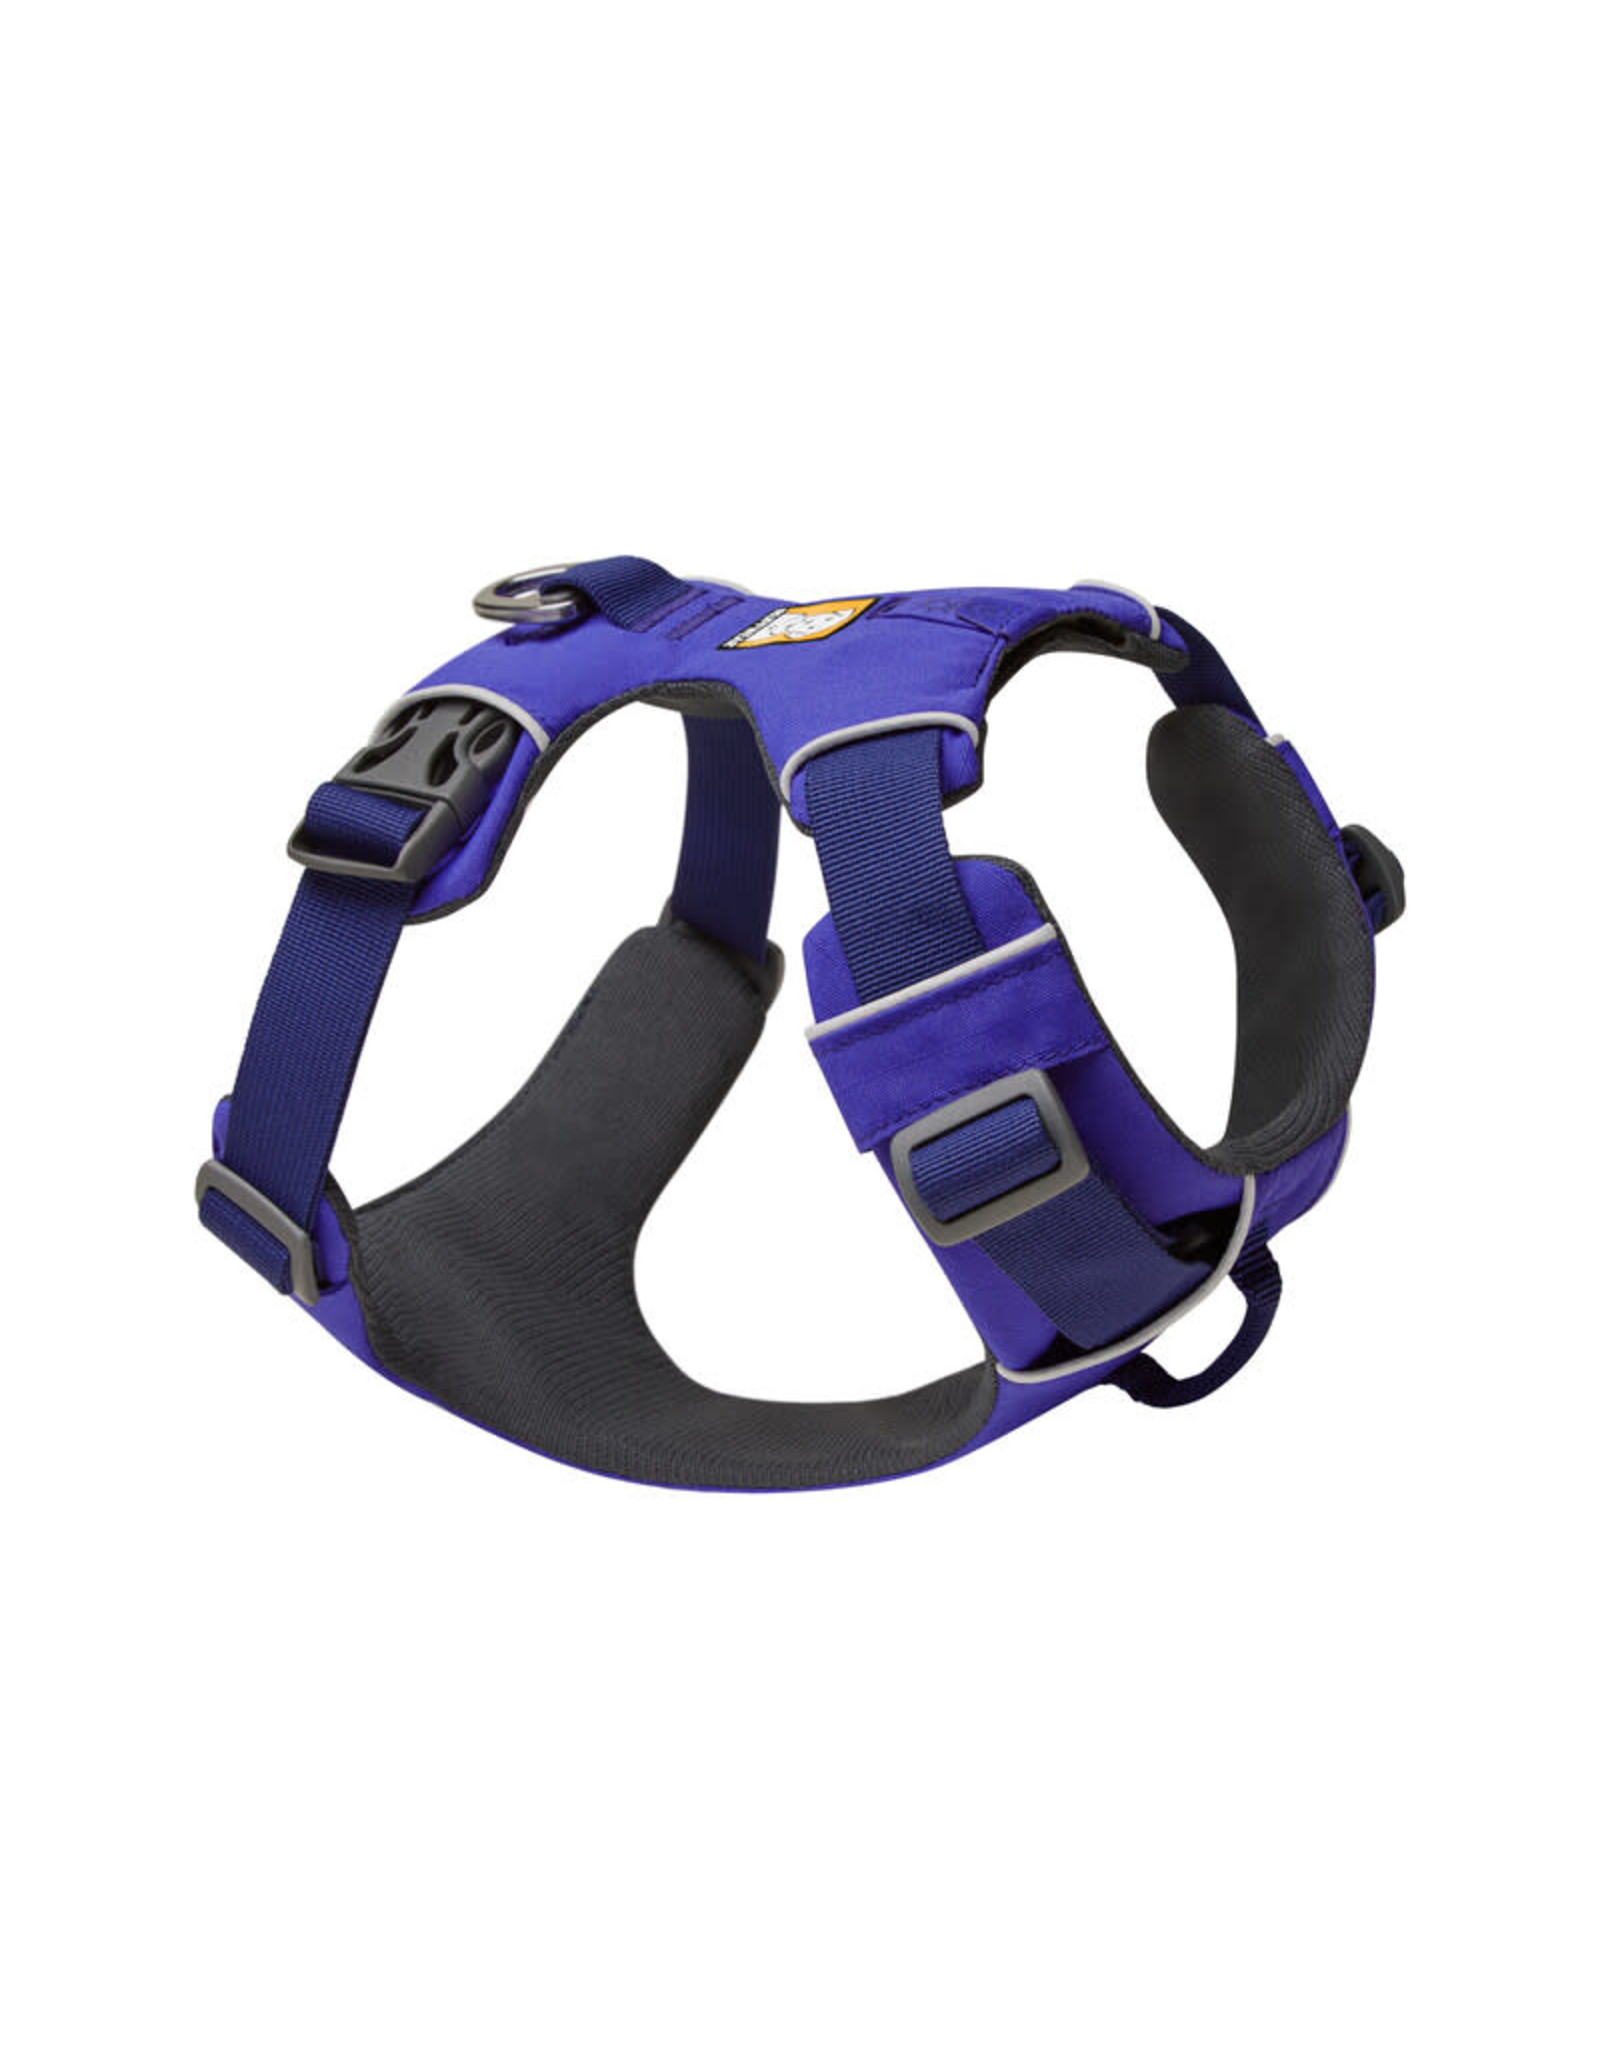 Ruffwear Front Range Harness: Huckleberry Blue, S